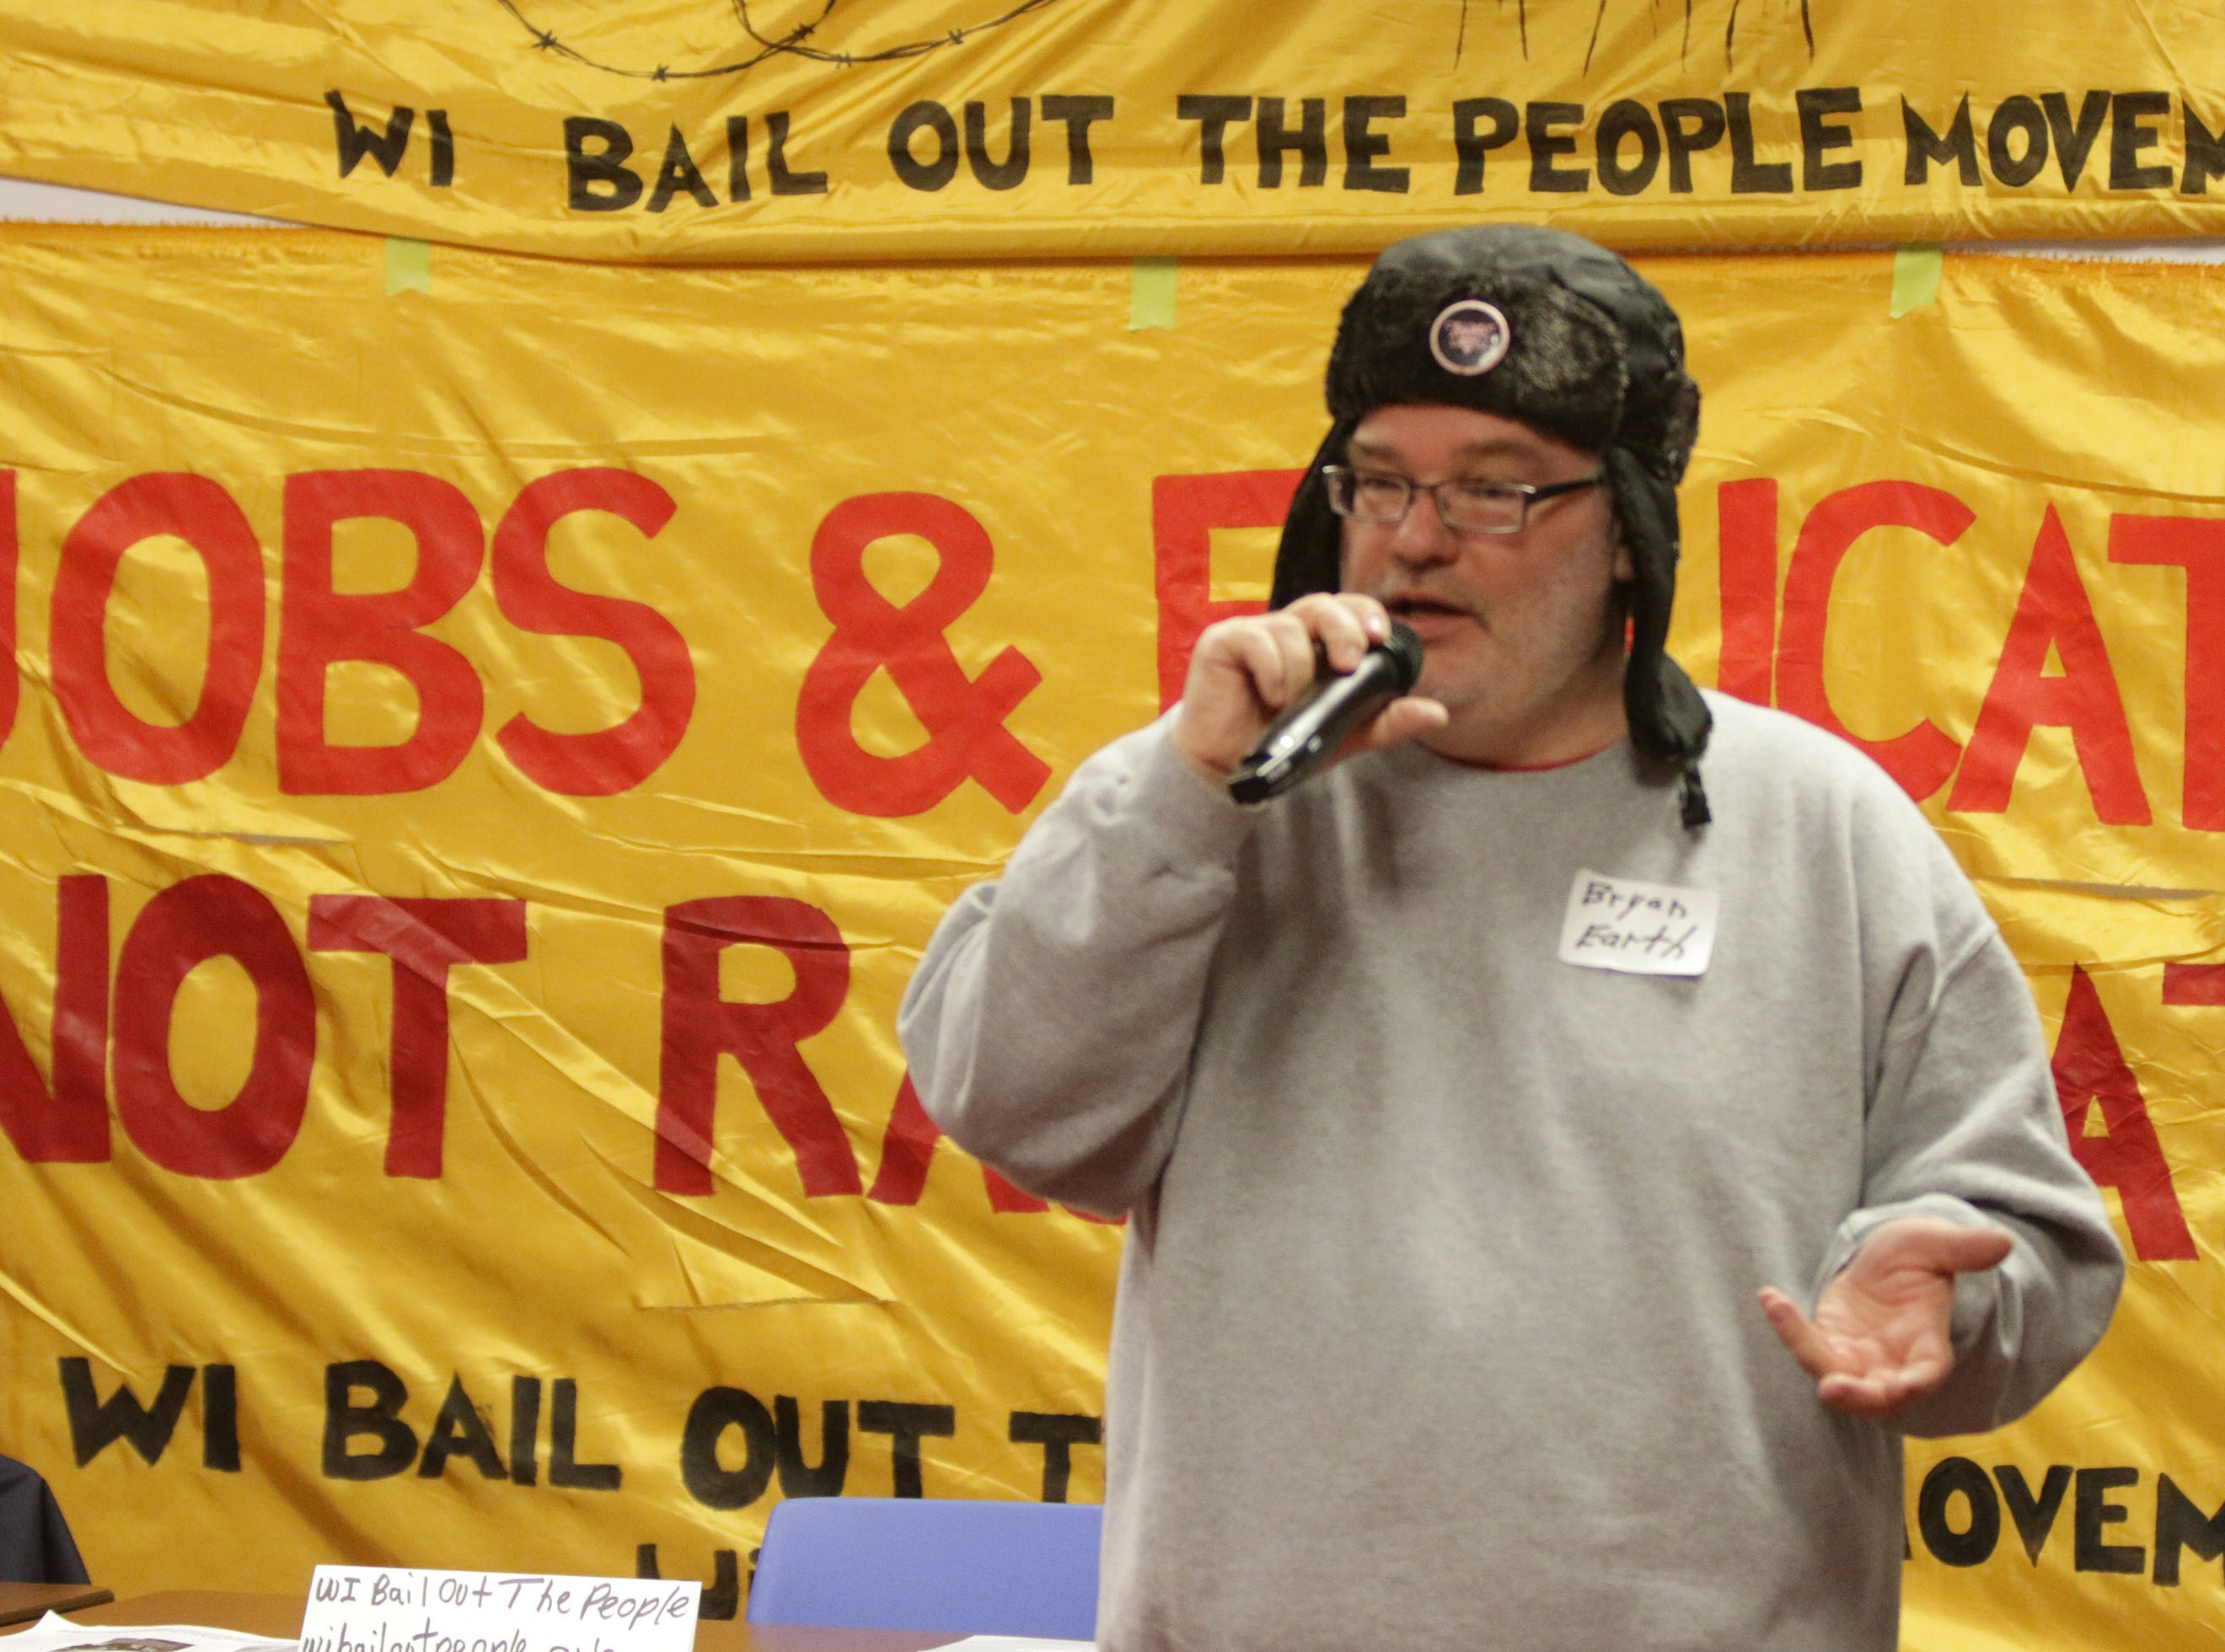 Bryan Pfeiffer of Wisconsin Bail Out the People, speaks, Saturday, January 19, 2019, in Sheboygan, Wis. The event focused on human rights, immigration, economic justice and drug abuse issues.